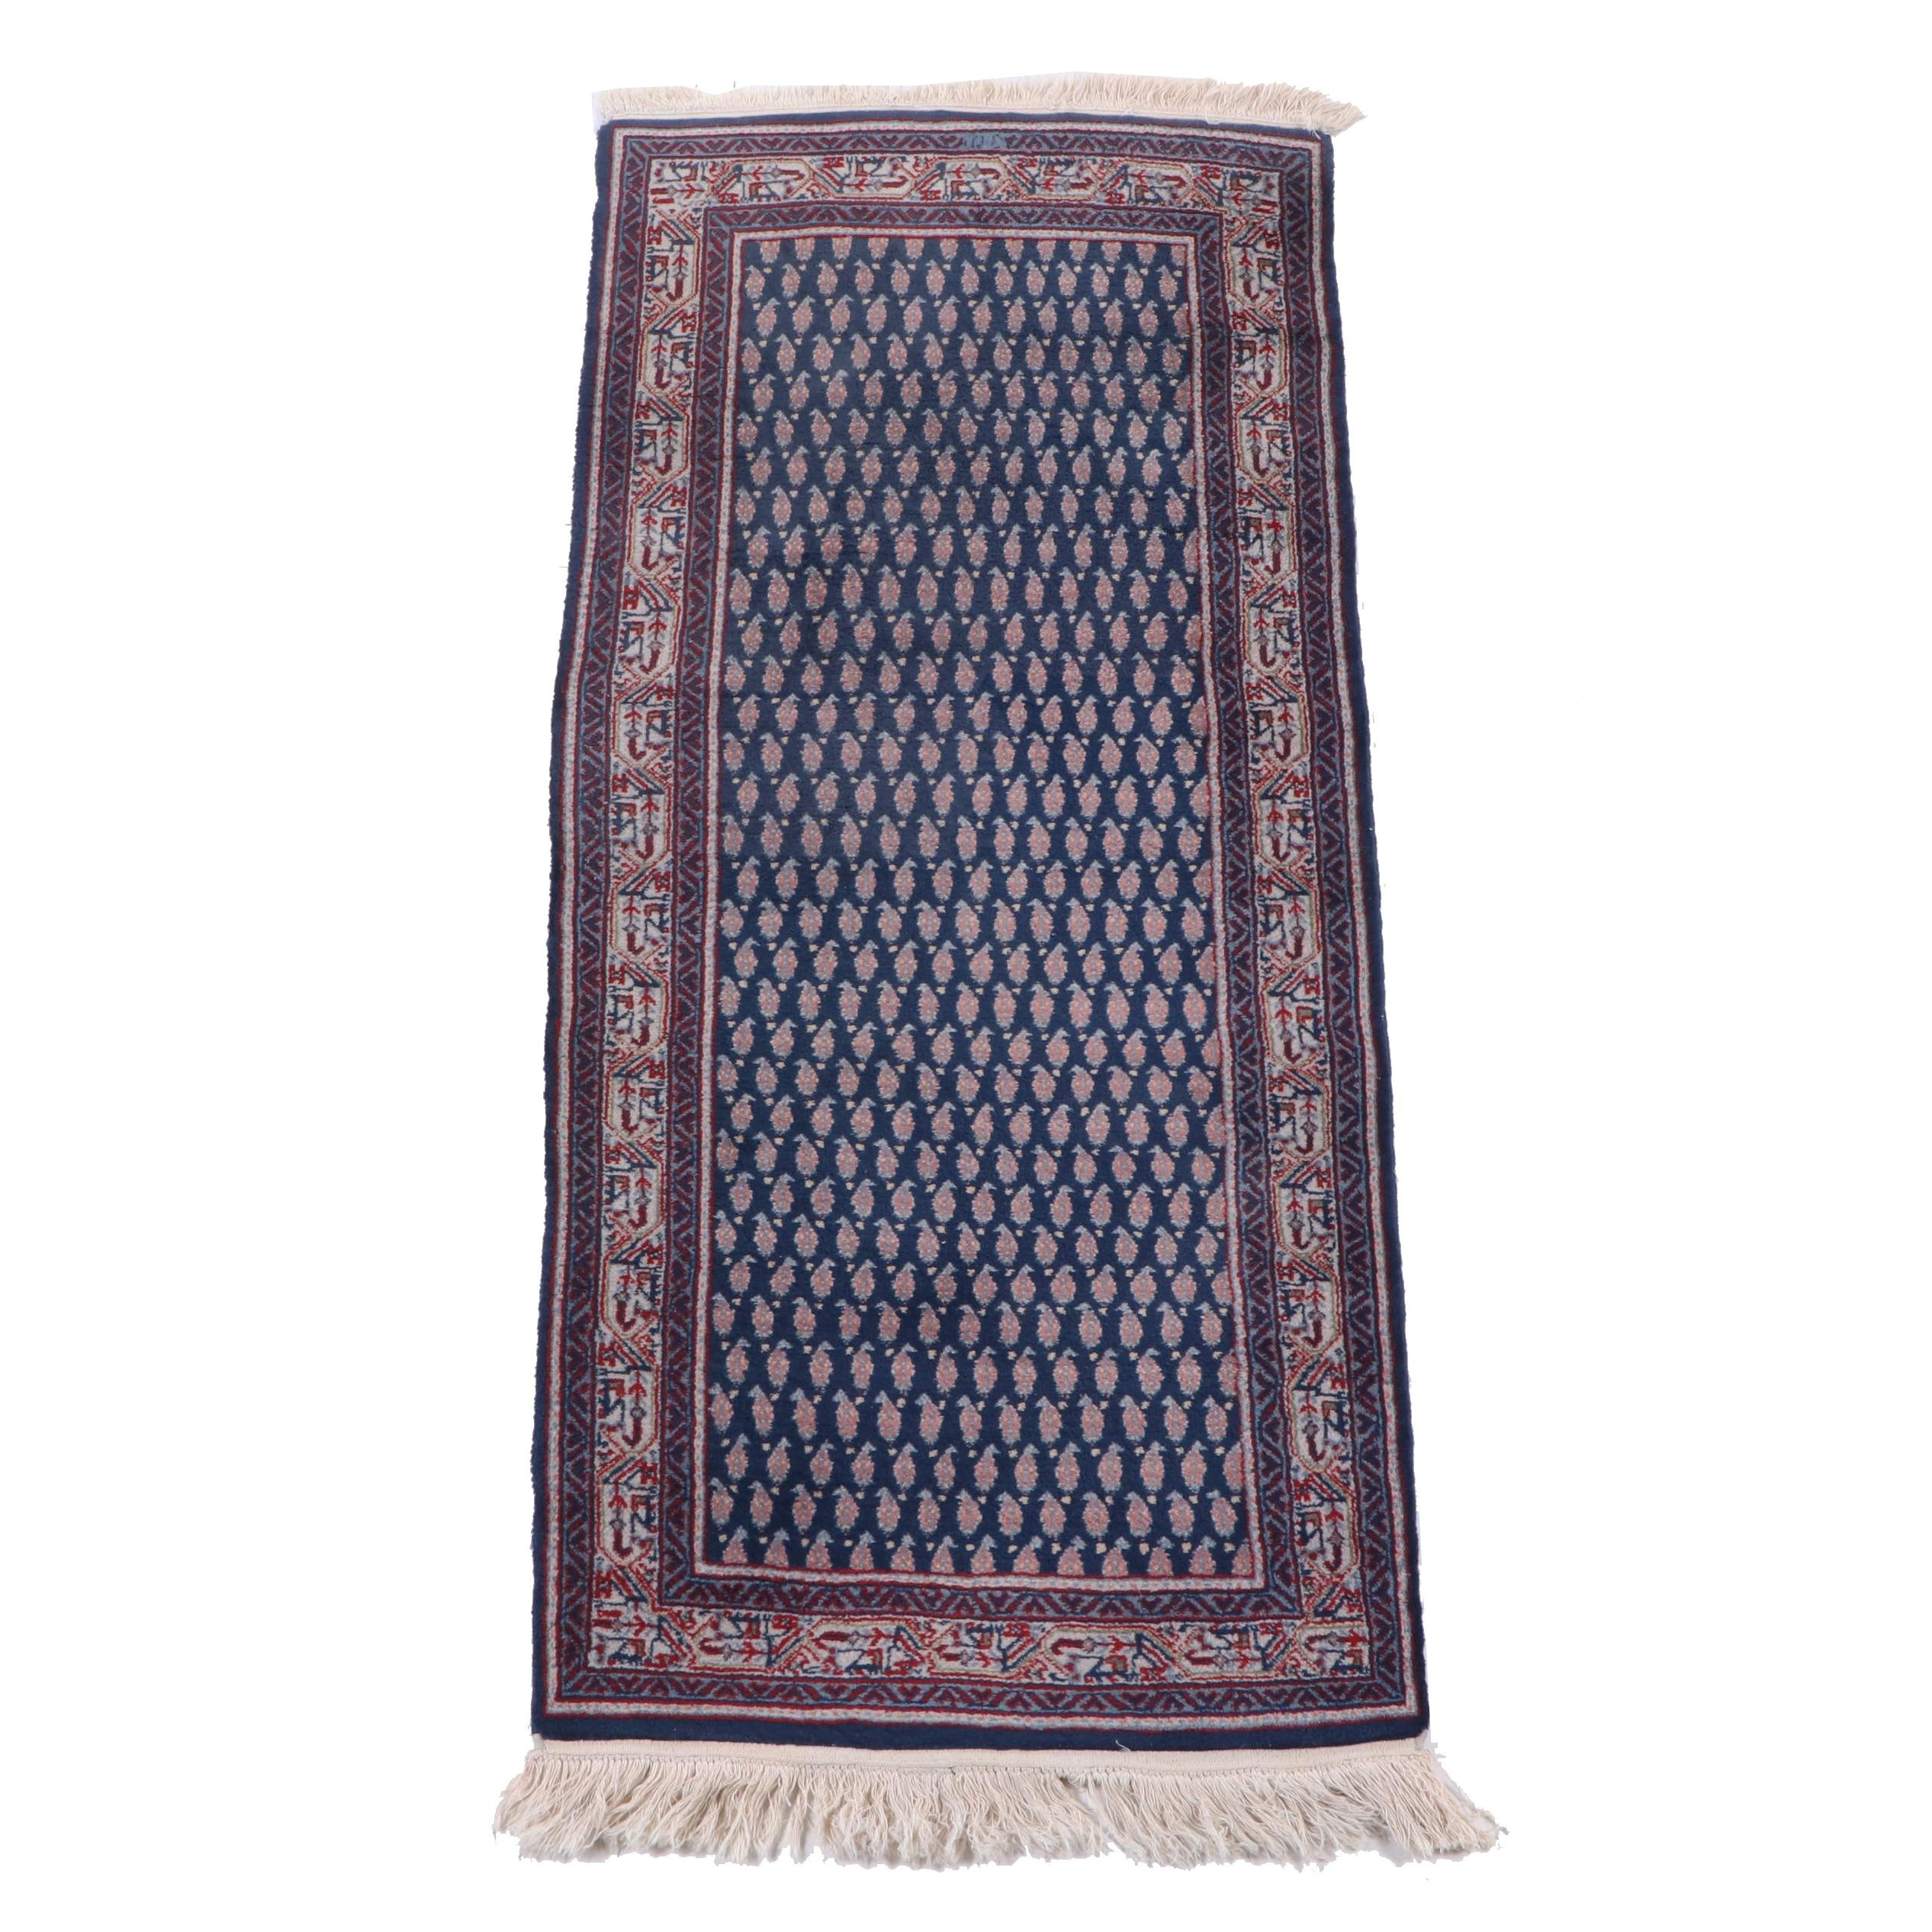 Hand-Knotted Indo-Persian Seraband Wool Runner